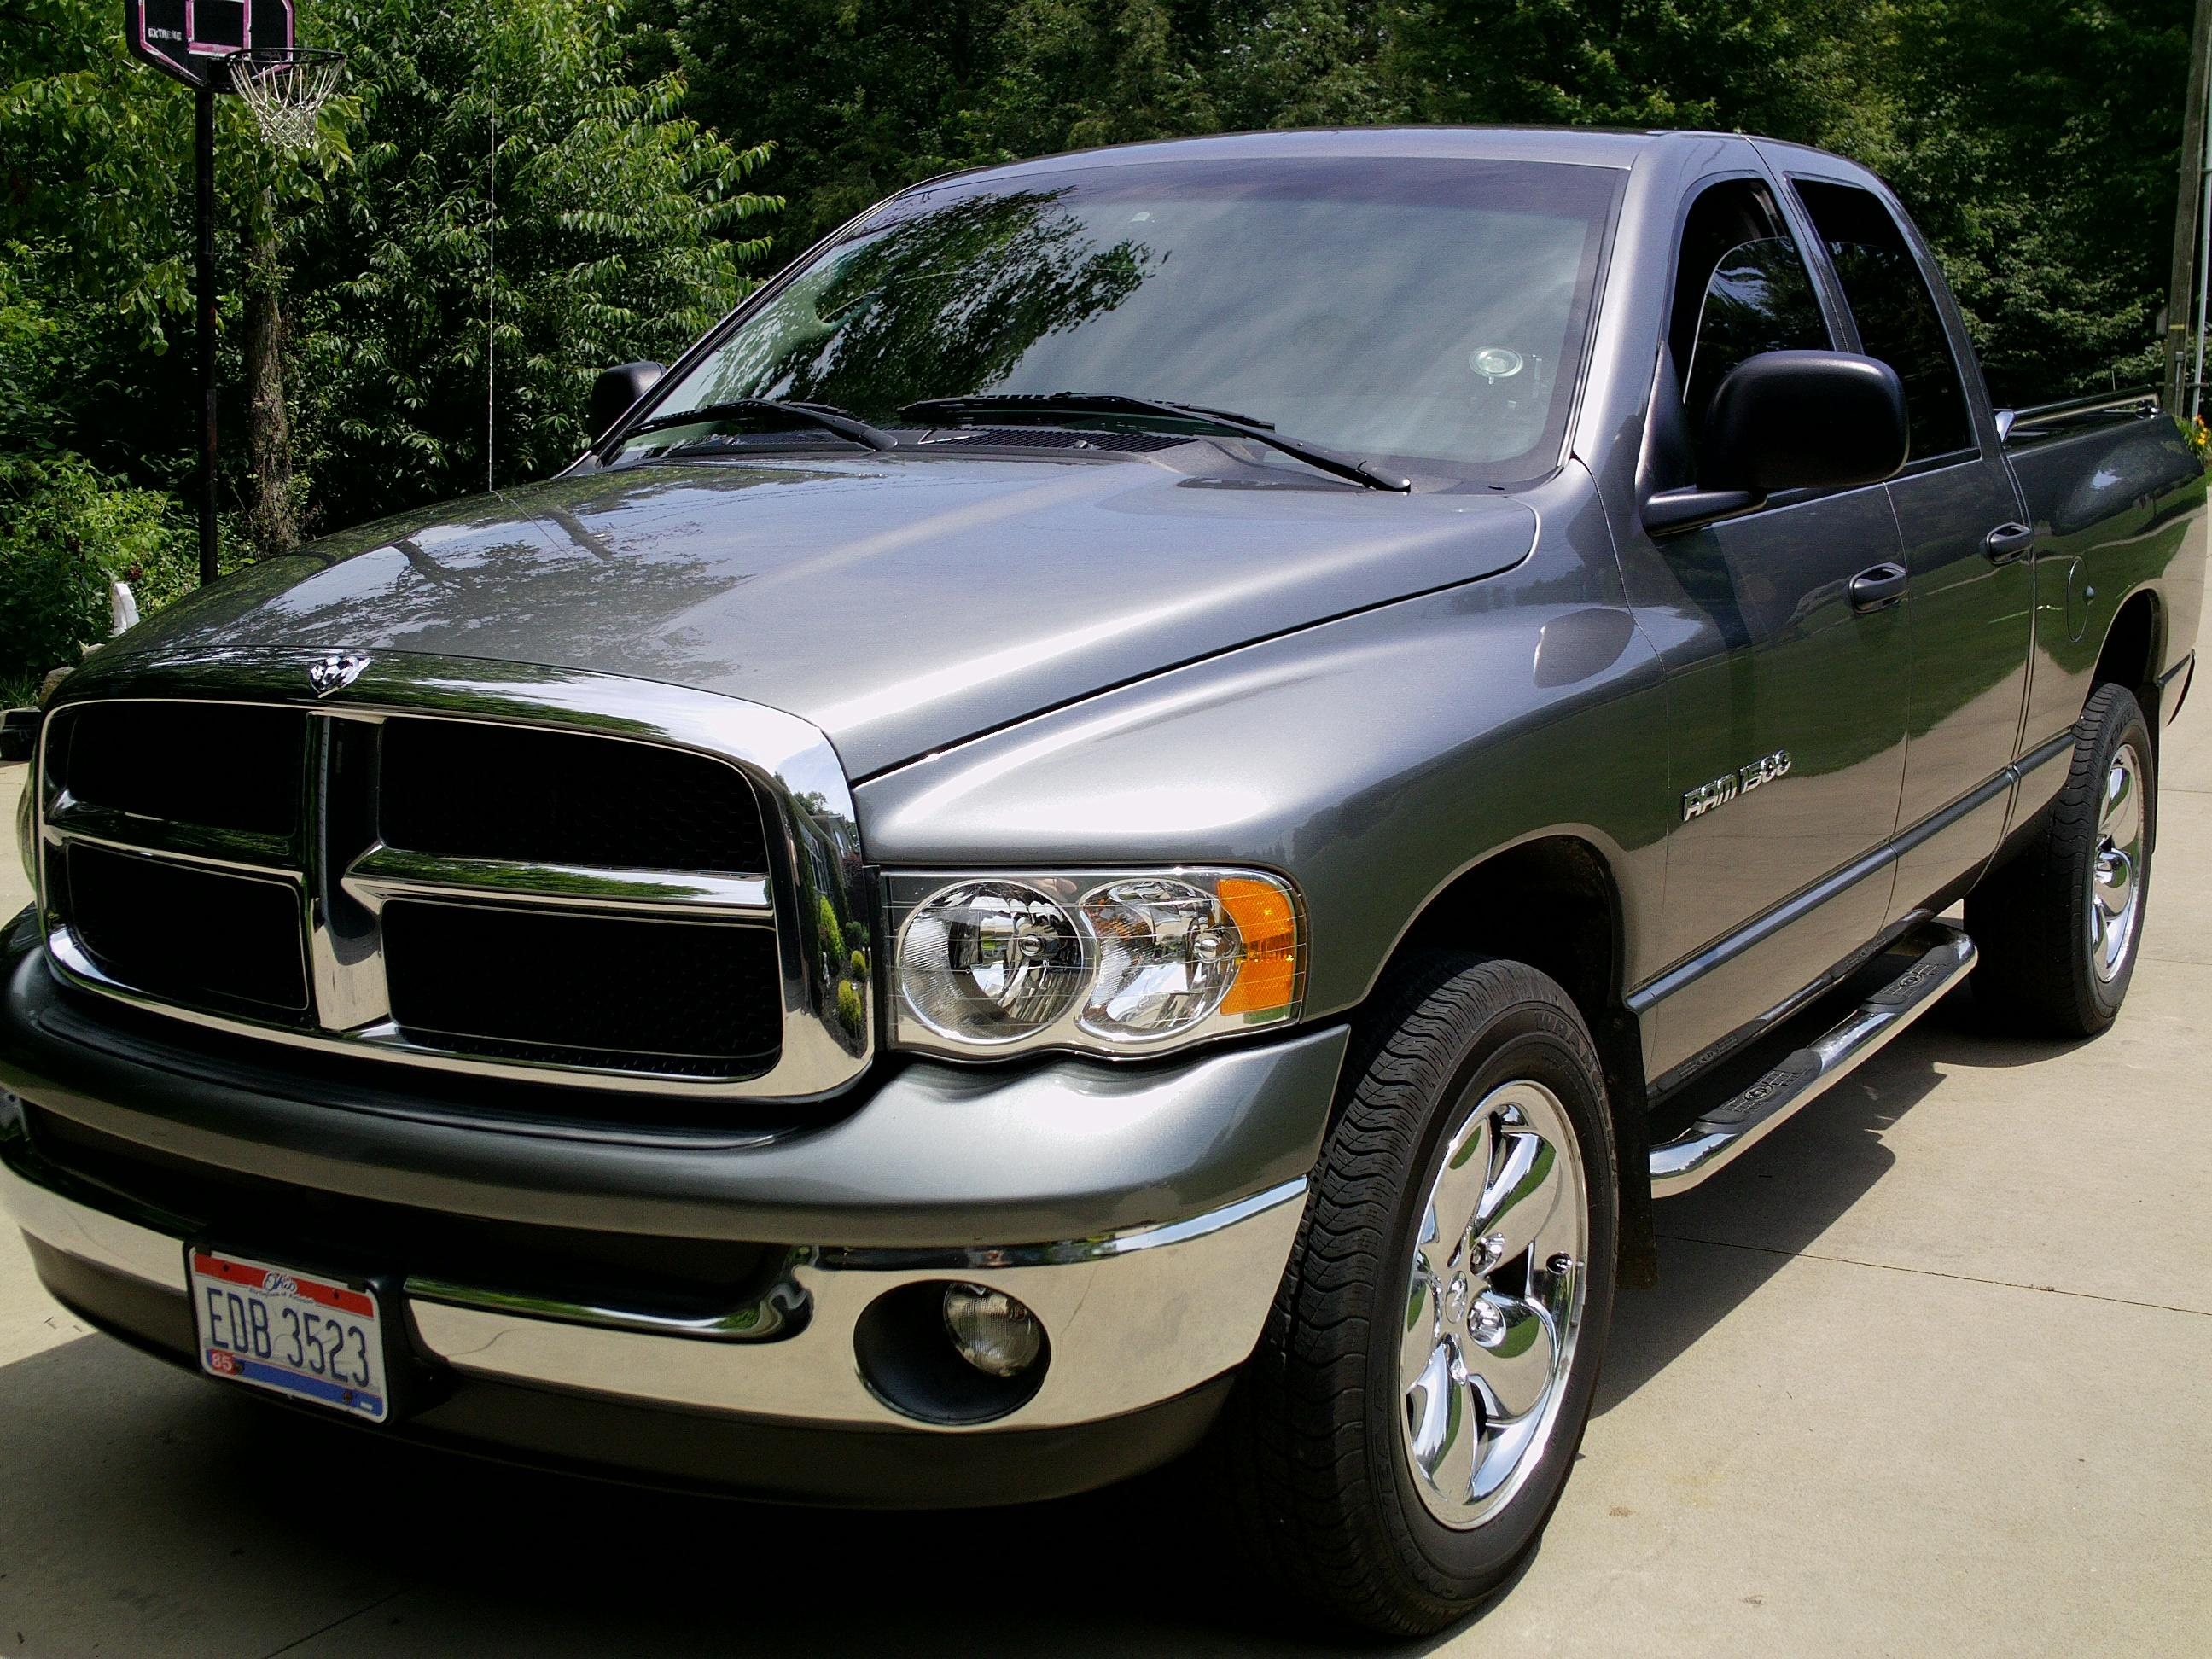 kels2013 2005 dodge ram 1500 quad cab specs photos. Black Bedroom Furniture Sets. Home Design Ideas